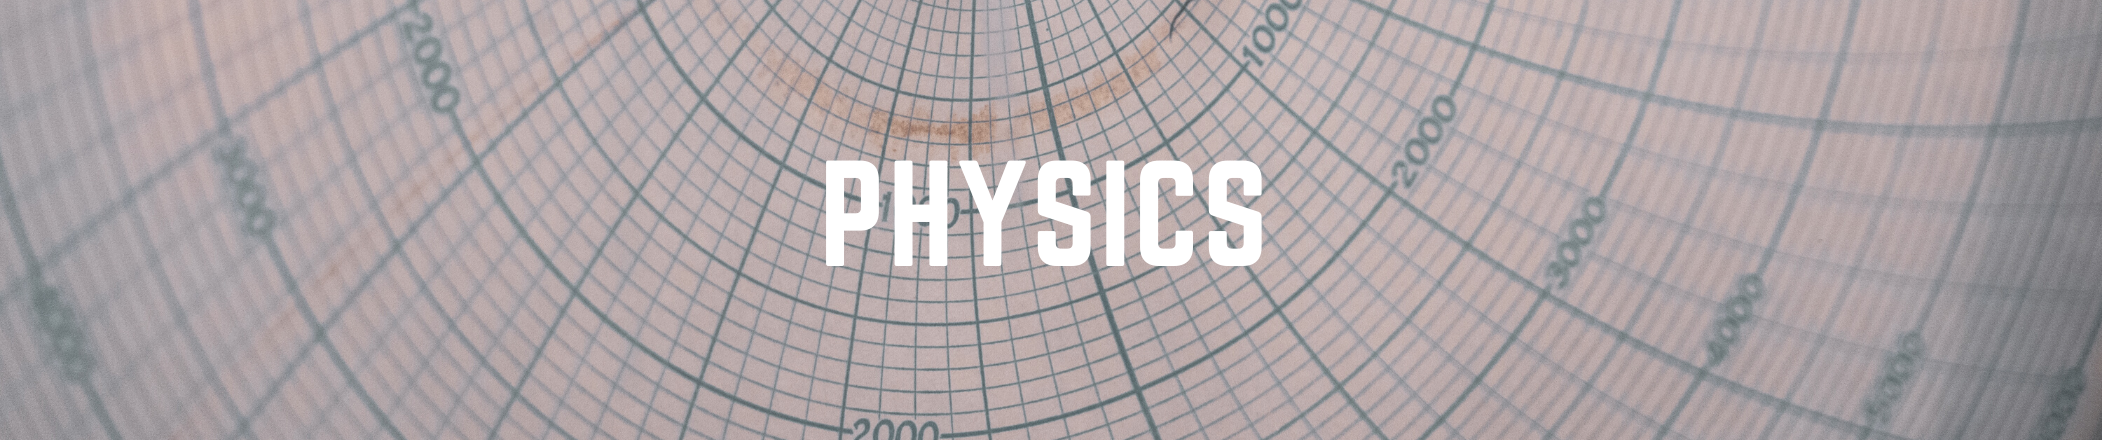 physics text with image background